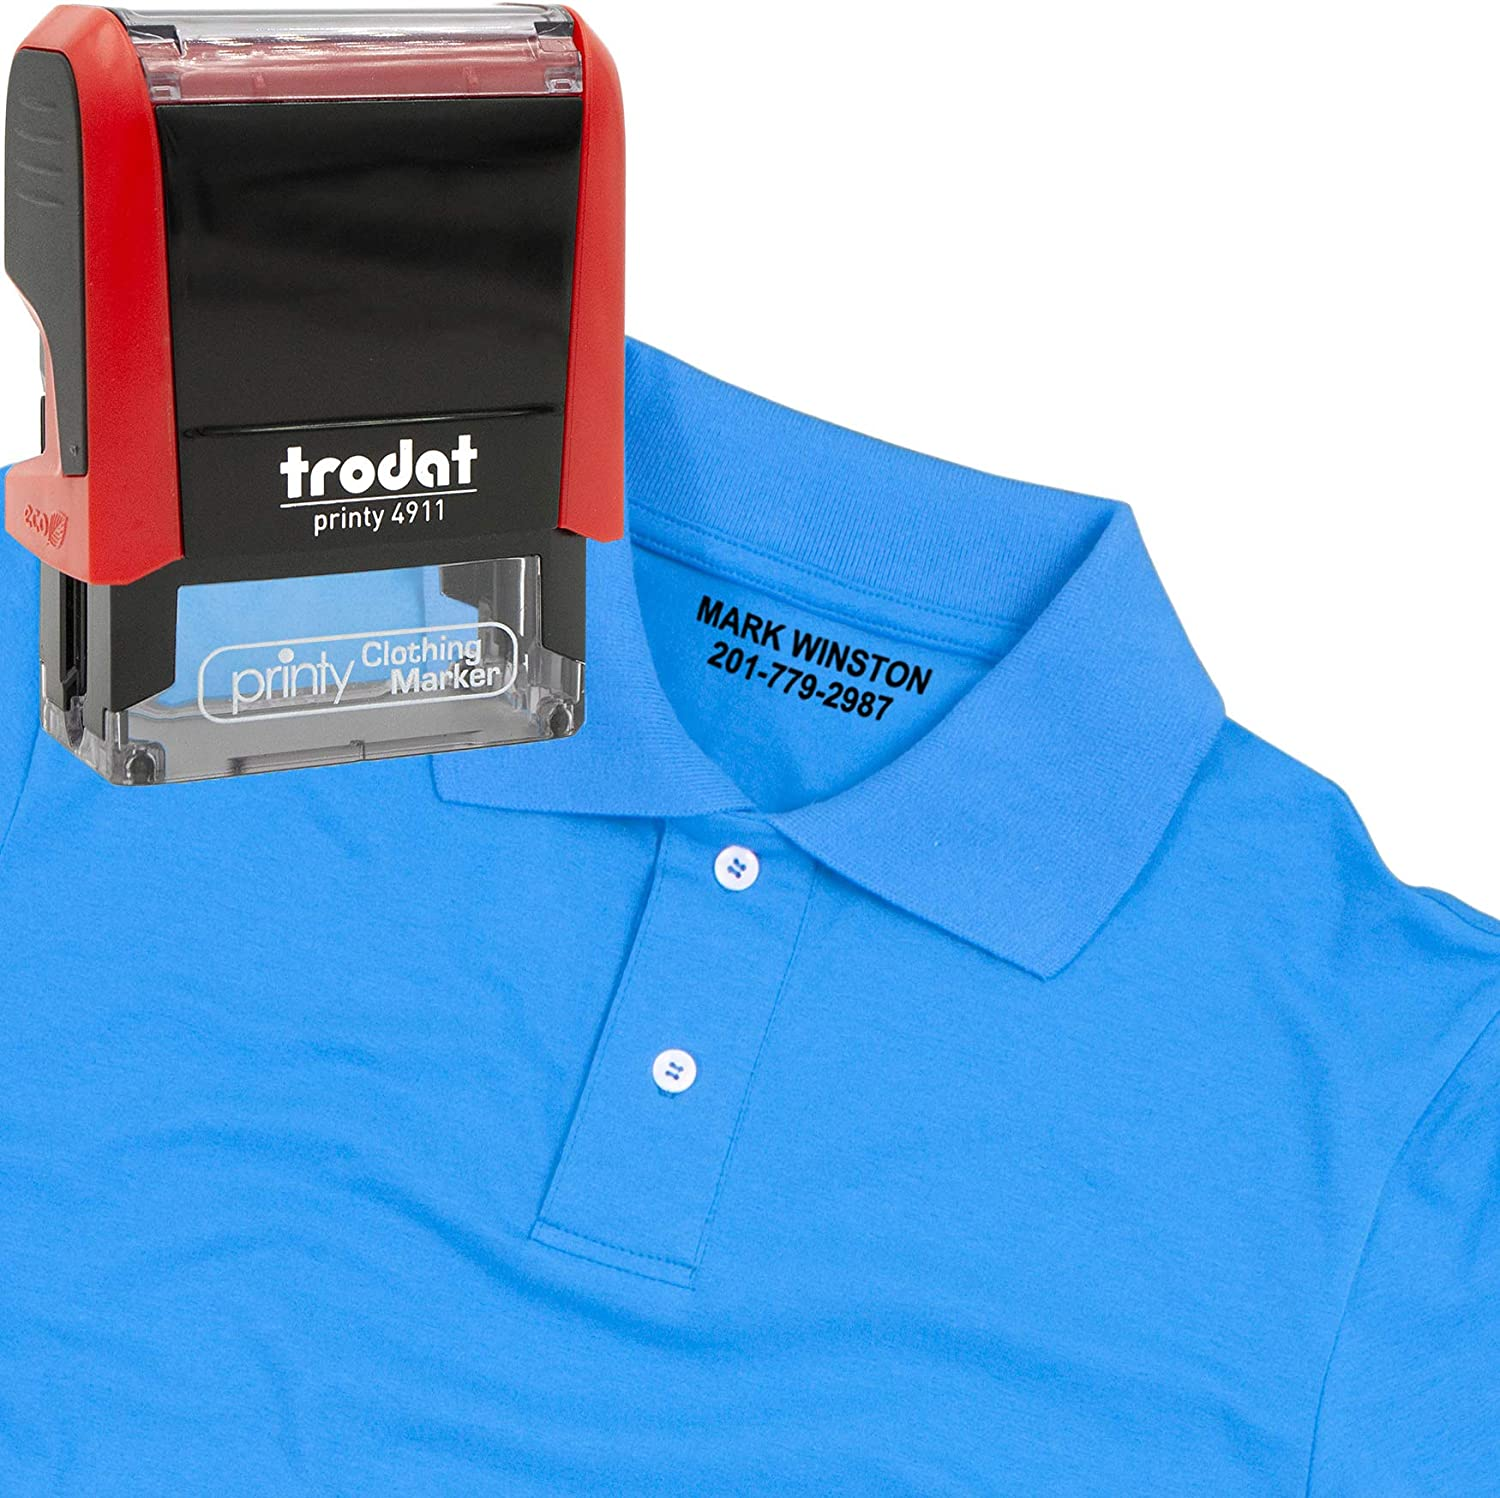 Customize Online Personalized with Your Name Trodat Clothing Stamp